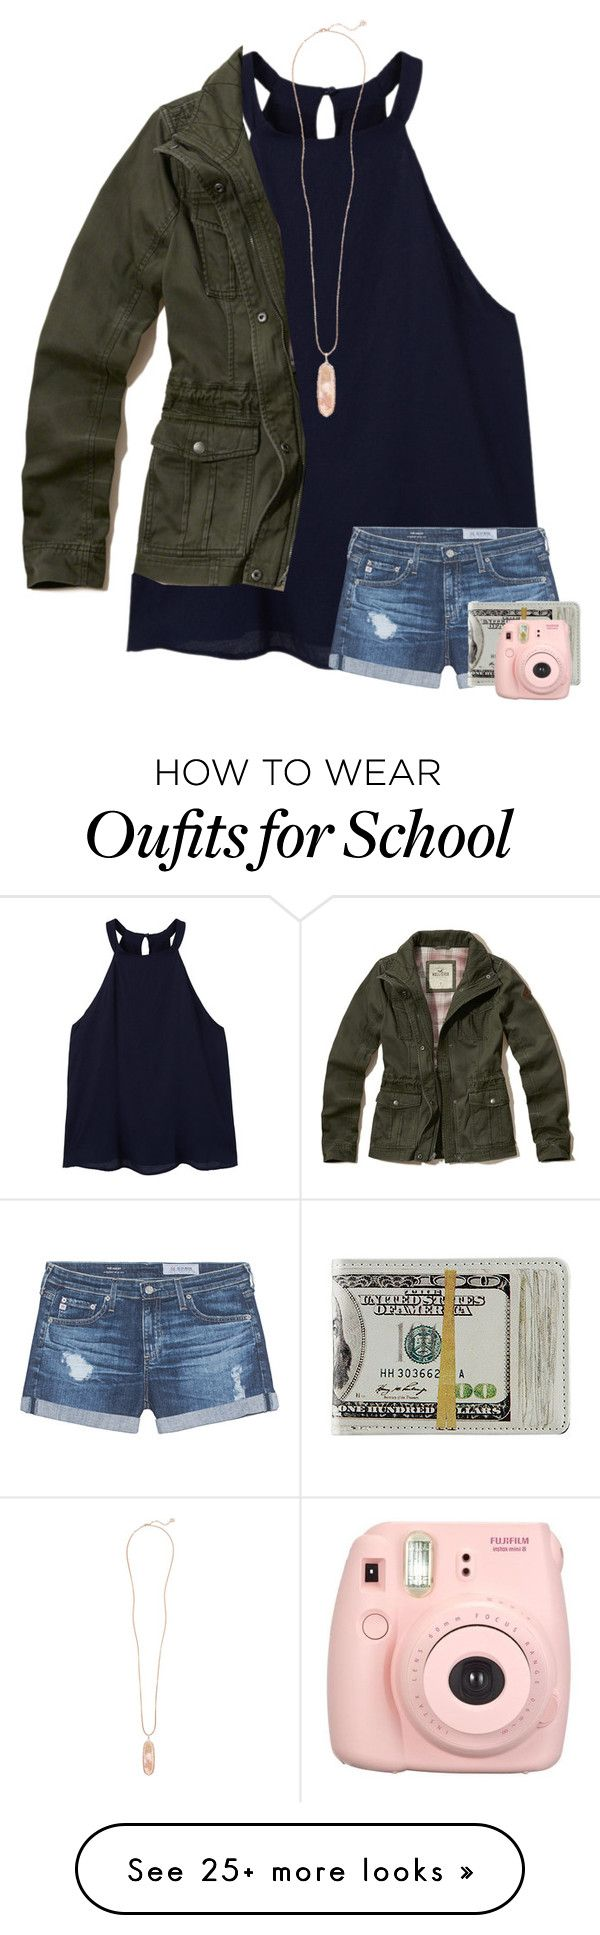 """""""School outfit"""" by mxsic-galaxy on Polyvore featuring MANGO, AG Adriano Goldschmied, Kendra Scott, Hollister Co. and Fujifilm"""